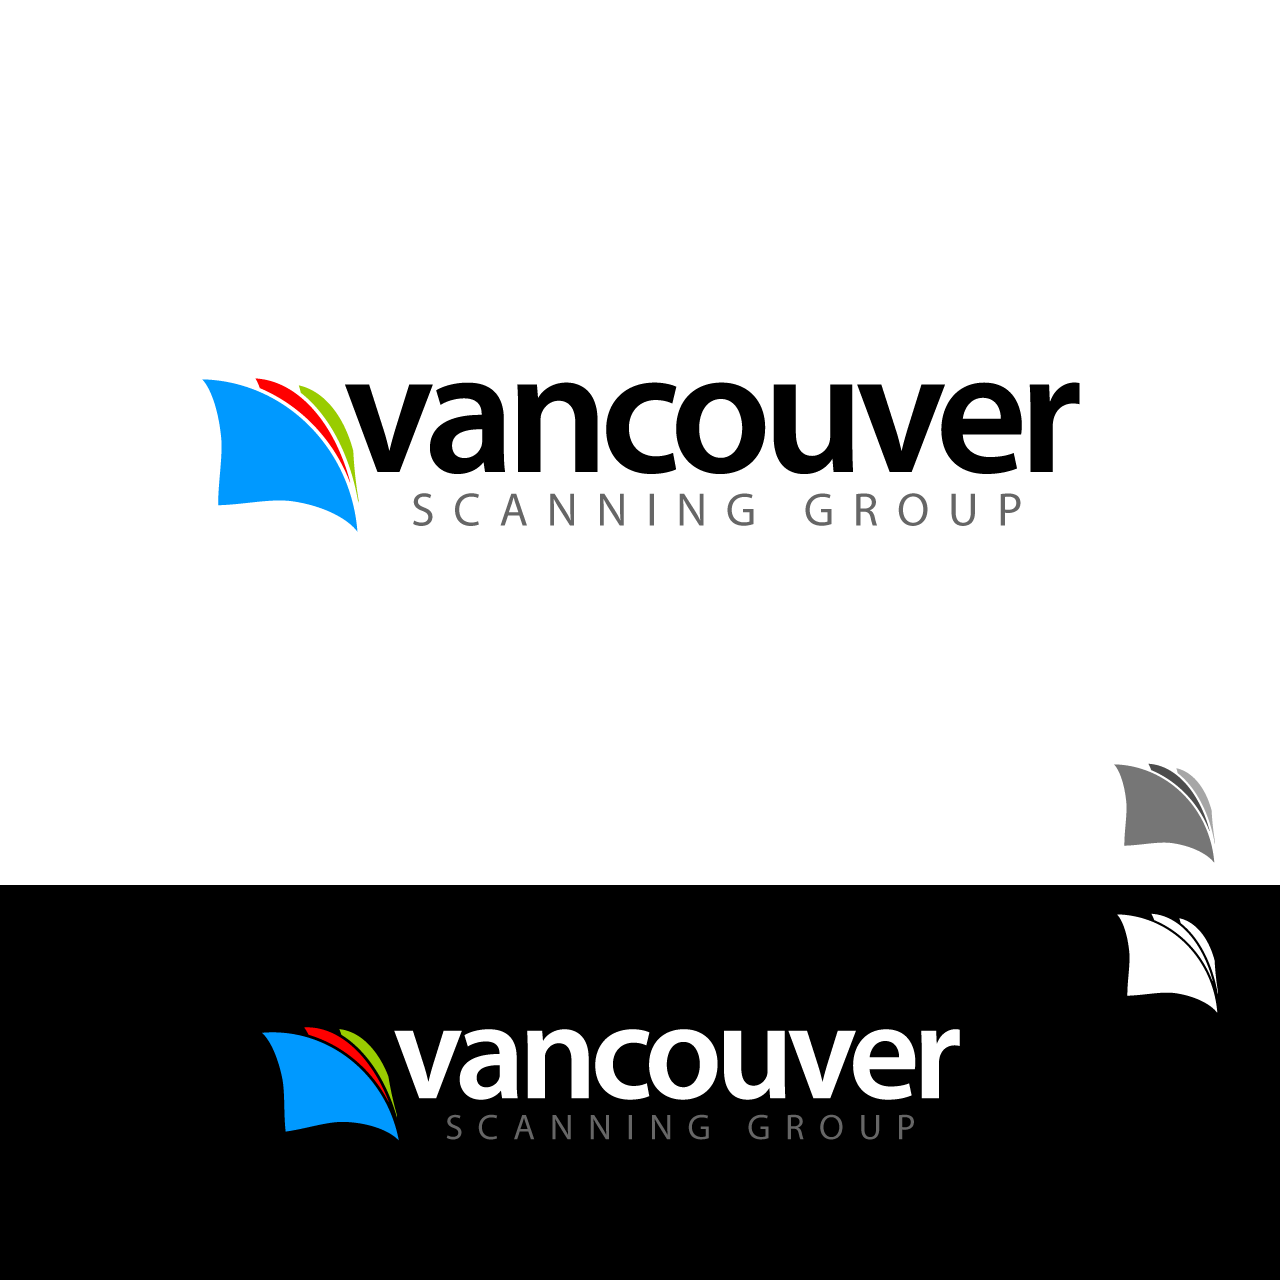 Logo Design by umxca - Entry No. 18 in the Logo Design Contest Vancouver Scanning Group.